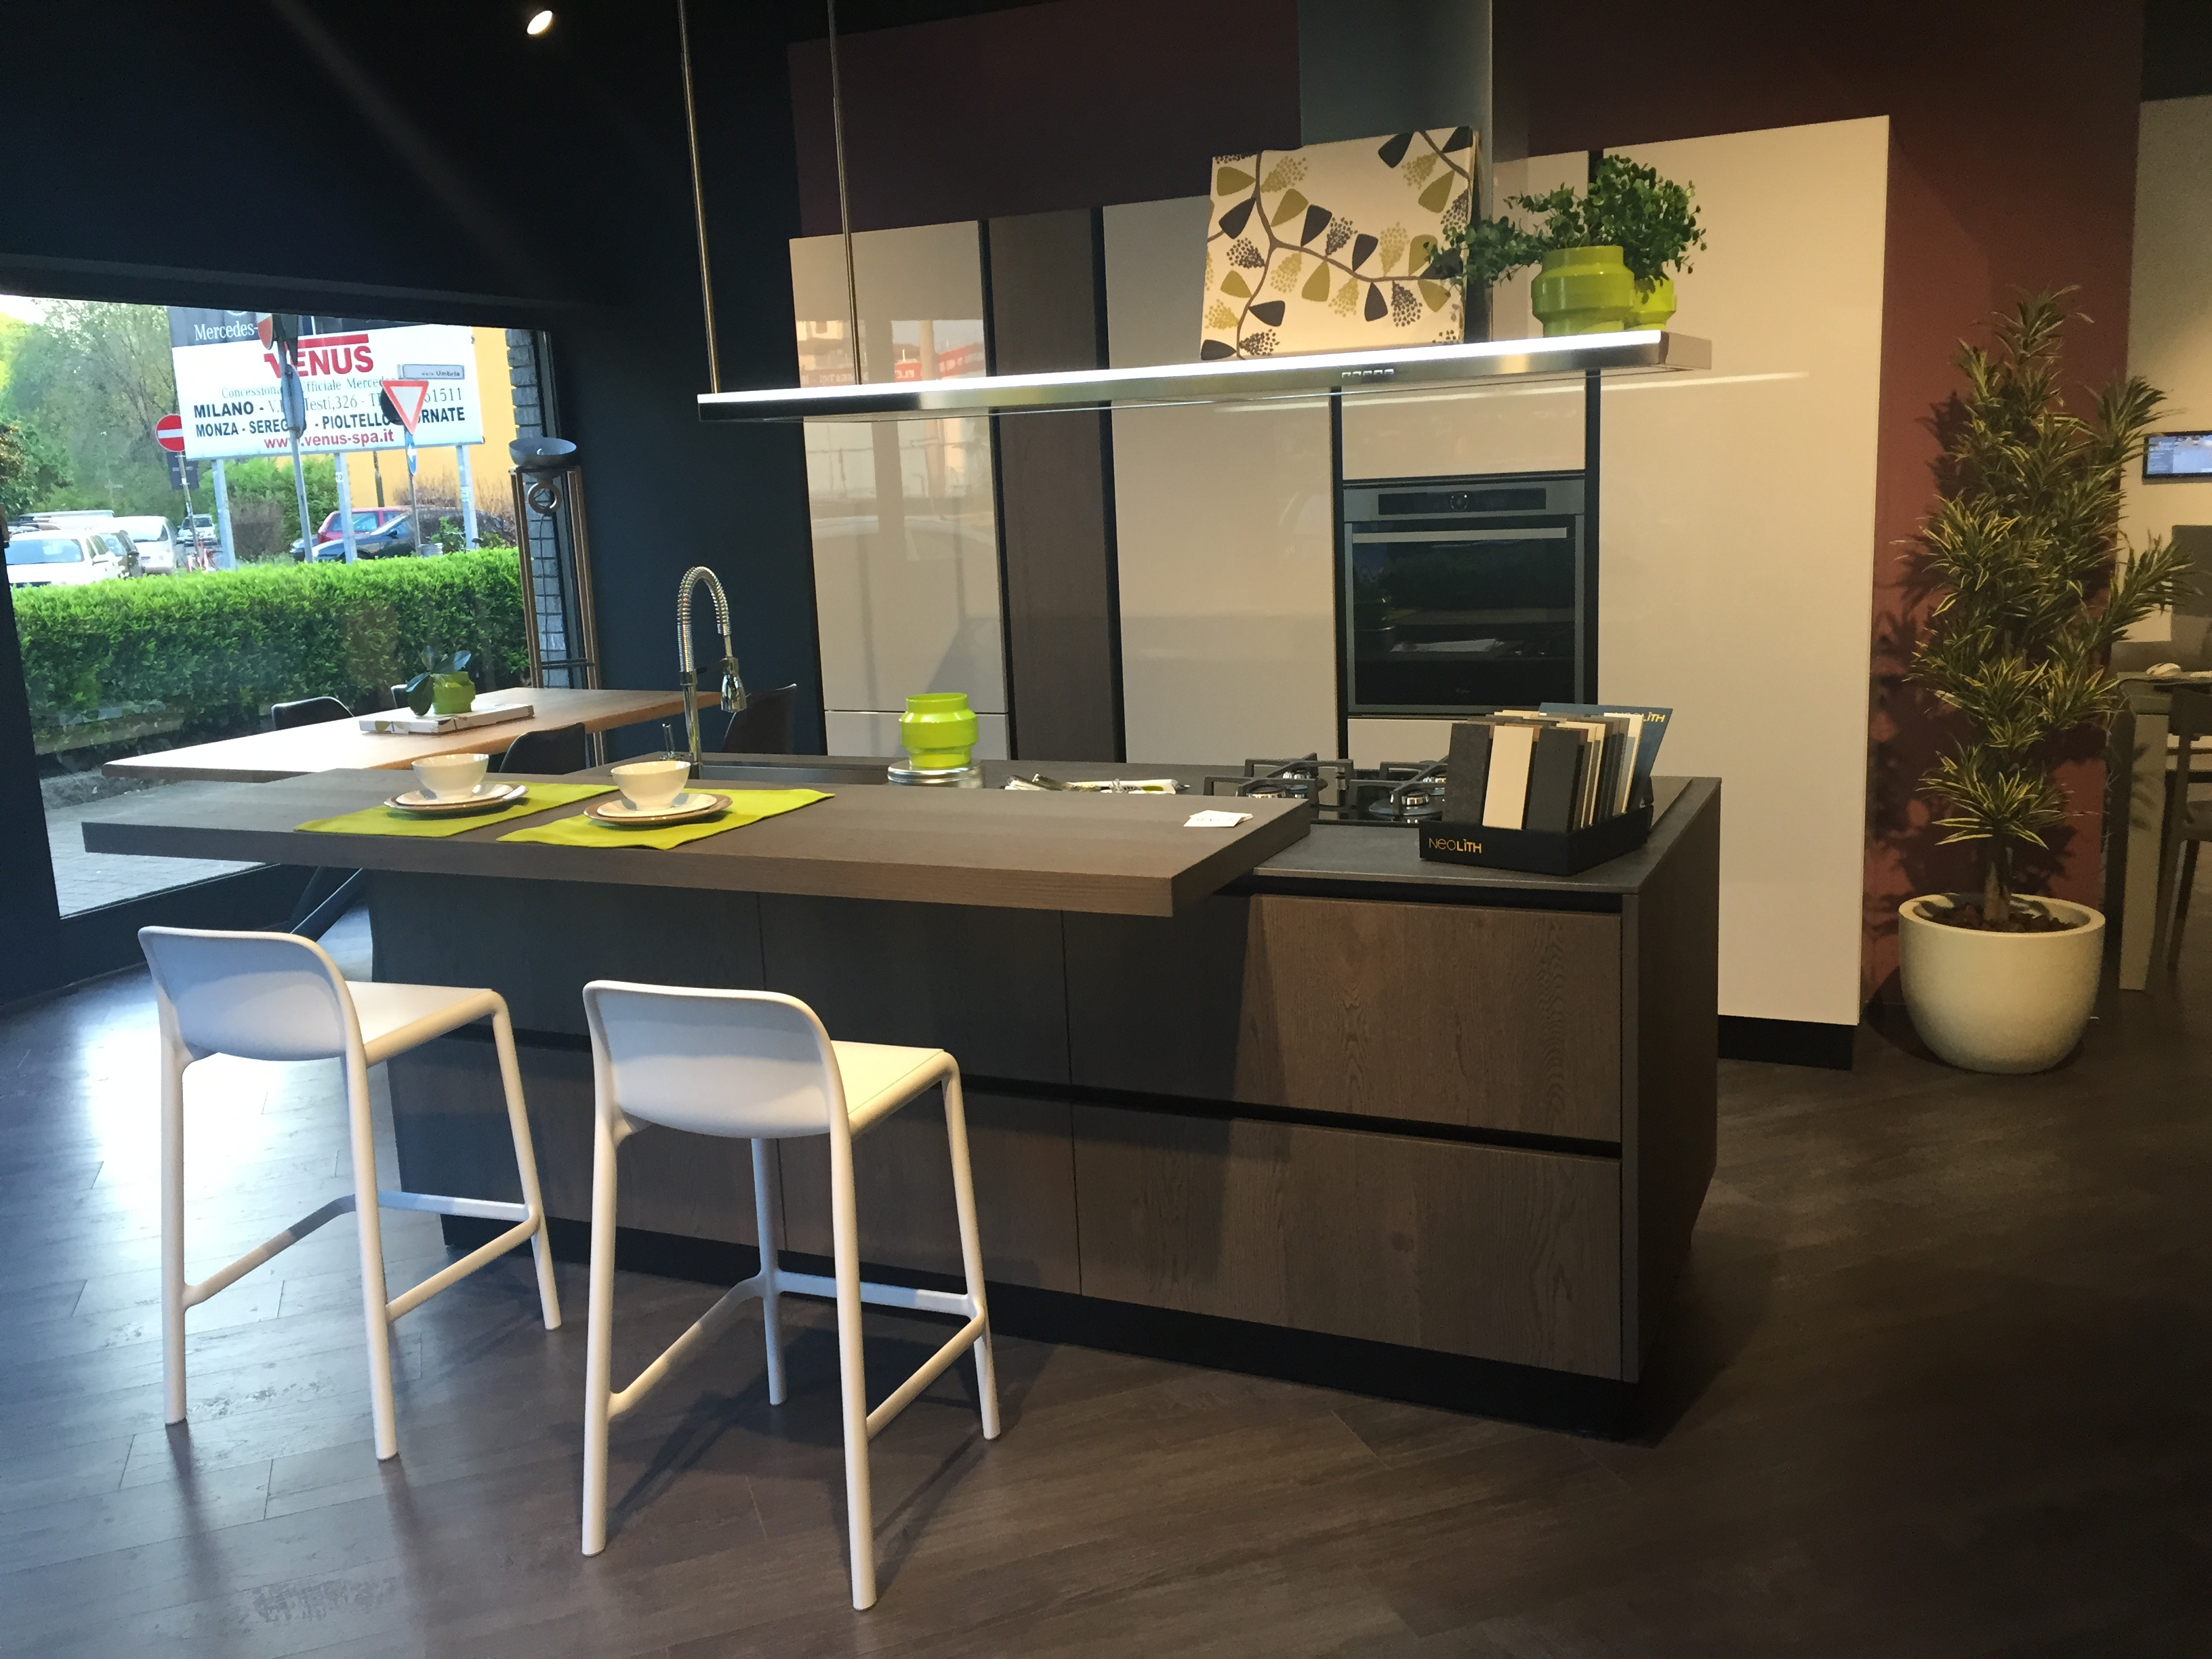 Cucine Lube inaugurates a new Store in Cinisello Balsamo on 5 May ...